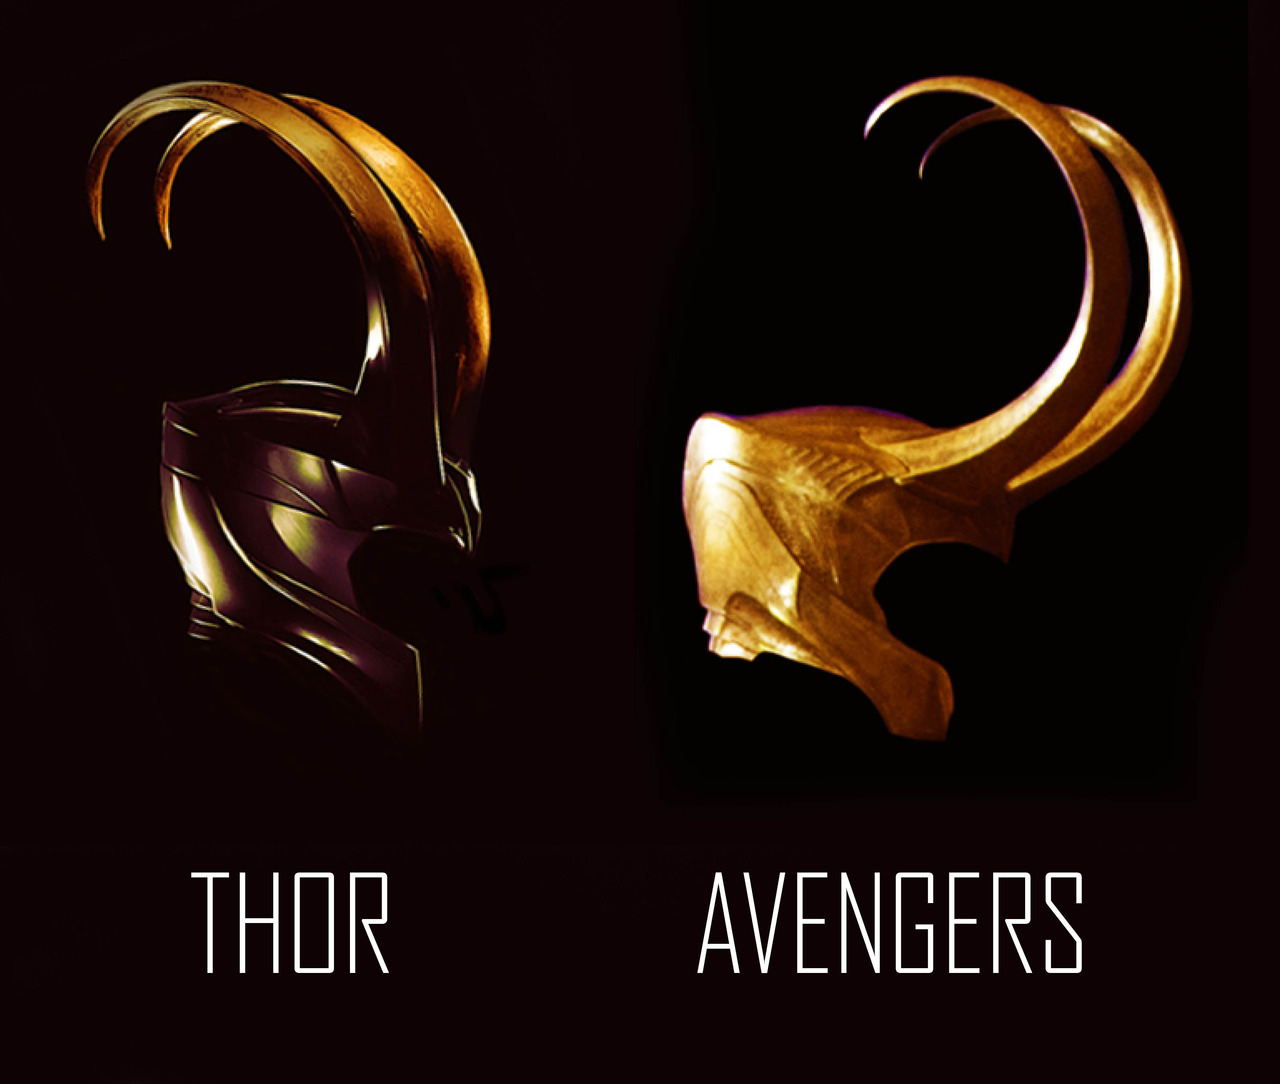 actuallybatman:  siguna:  Difference between Loki's helm in Thor and Avengers These come from two photos of very different quality so don't take this as a comparison in texture, color, etc; simply regarding the shape of the helm.  just waiting for someone to reblog with a 4 paragraph explanation of the connection between loki's feelings and his evolving helm